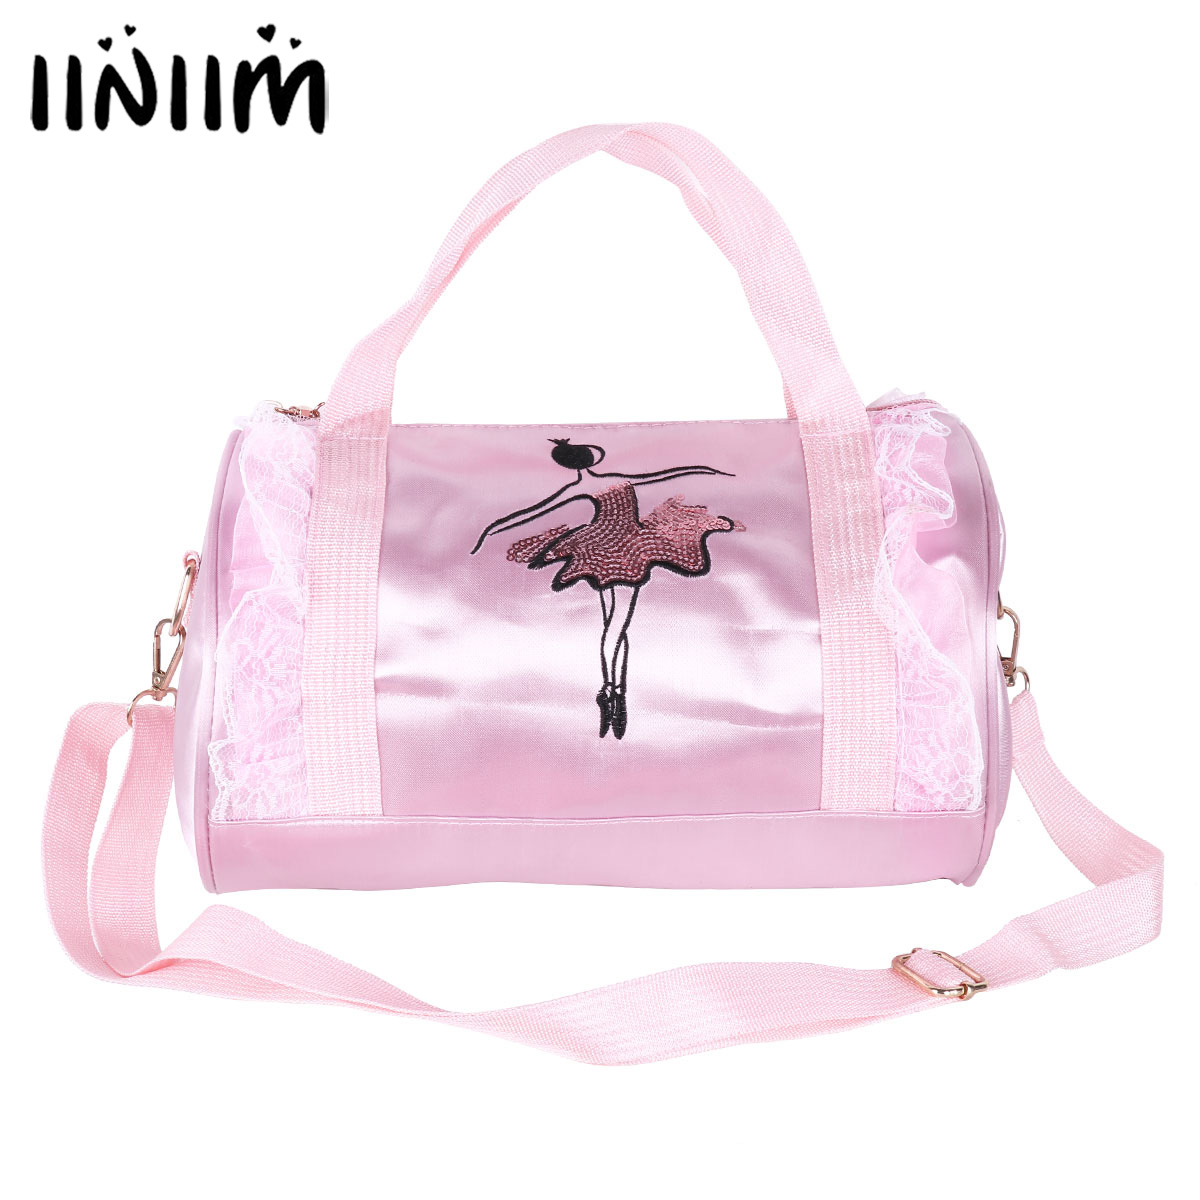 Kids Girls Adorable Ballet Dance Bag Embroidered Ballerina Dancing Duffle Bag Hand Bag Shoulder Bag with Detachable Strap